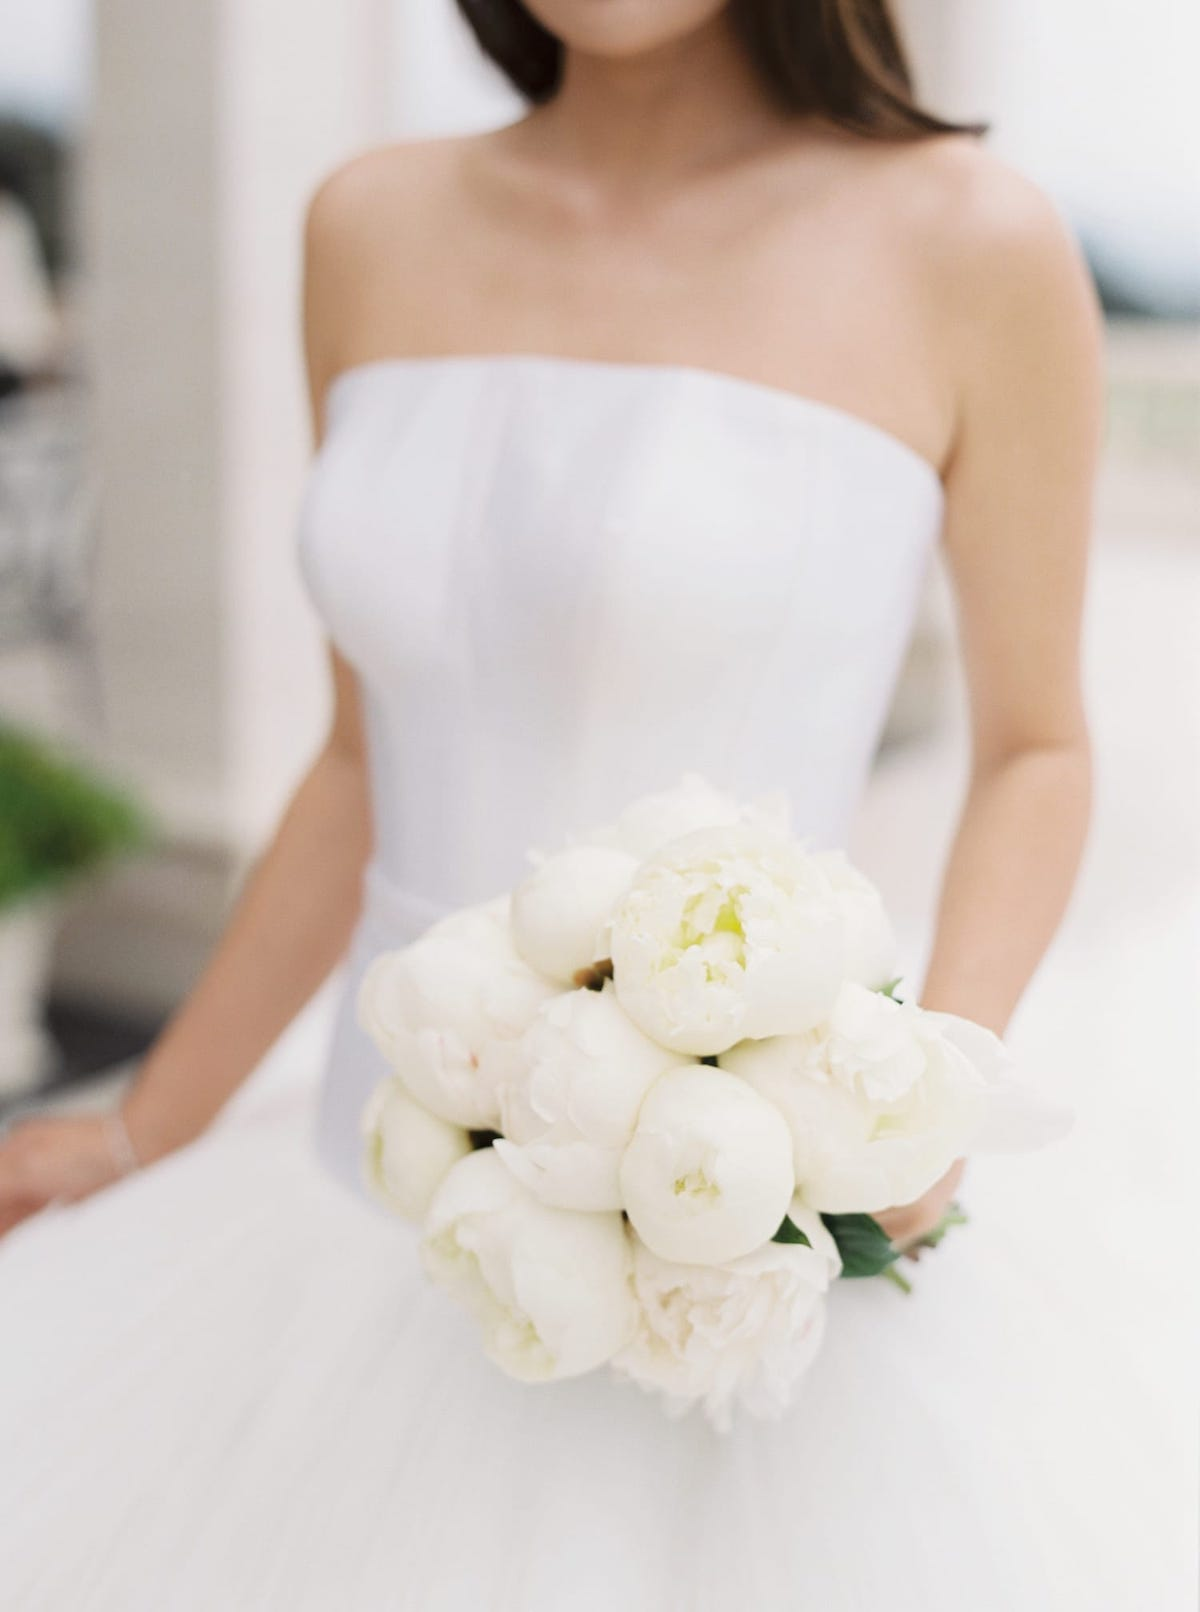 Spring bridal bouquets with all-white peonies